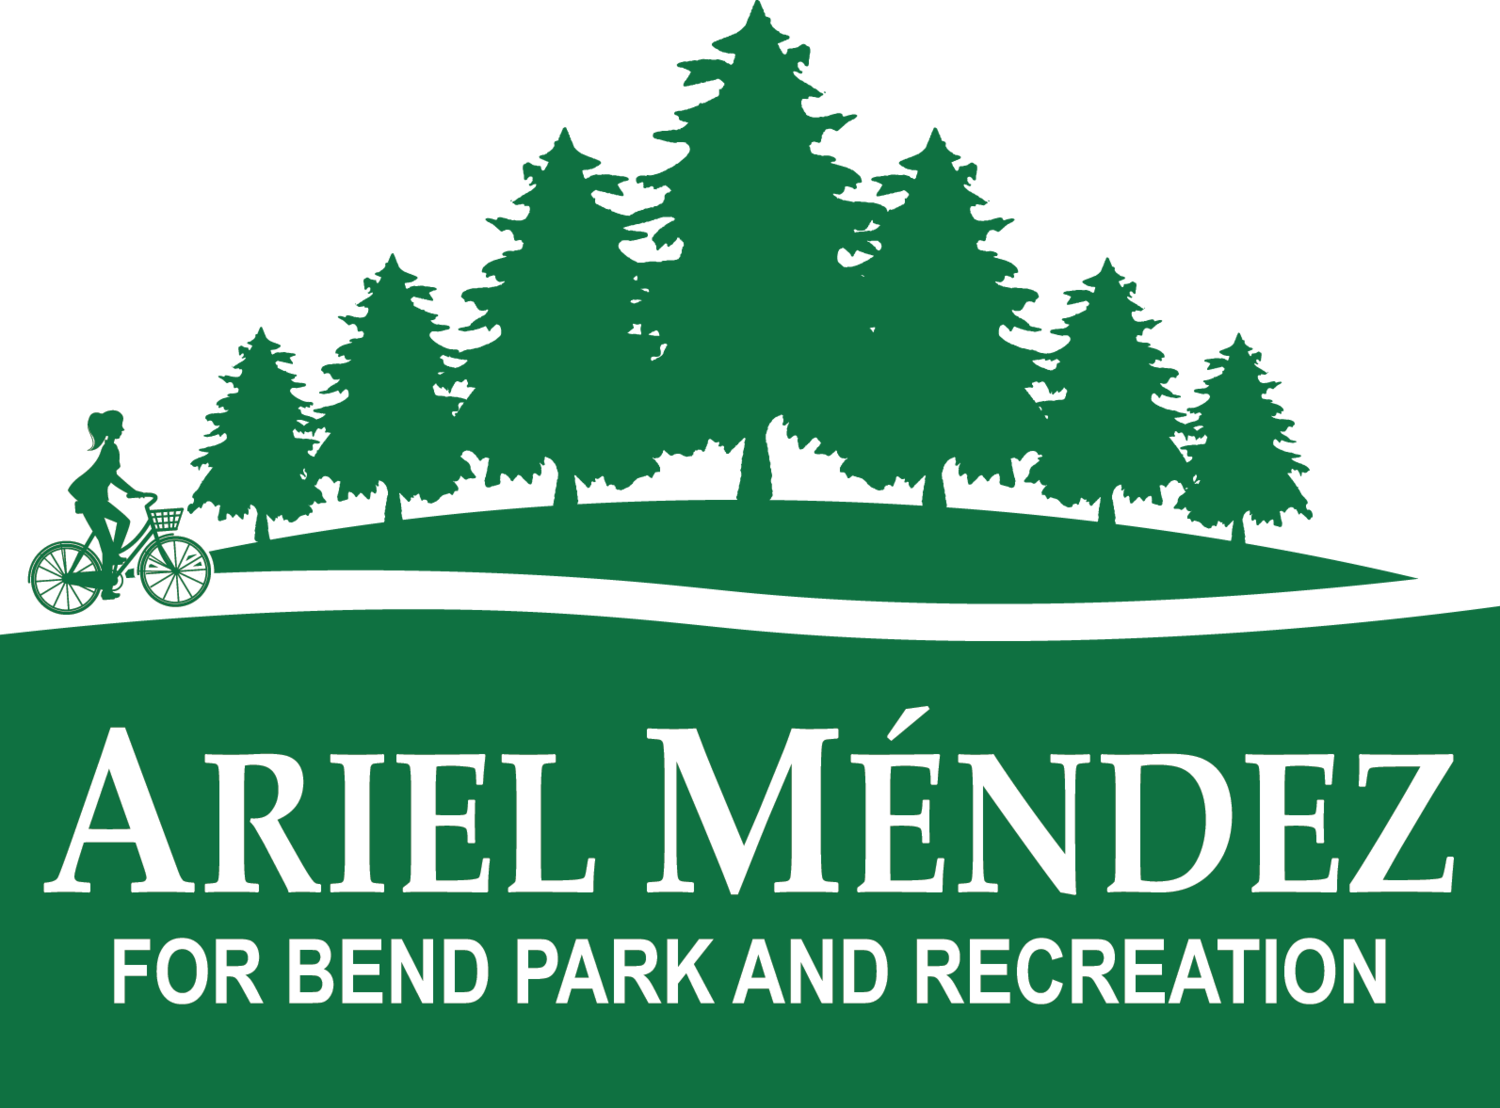 Ariel Méndez for Bend Park and Recreation